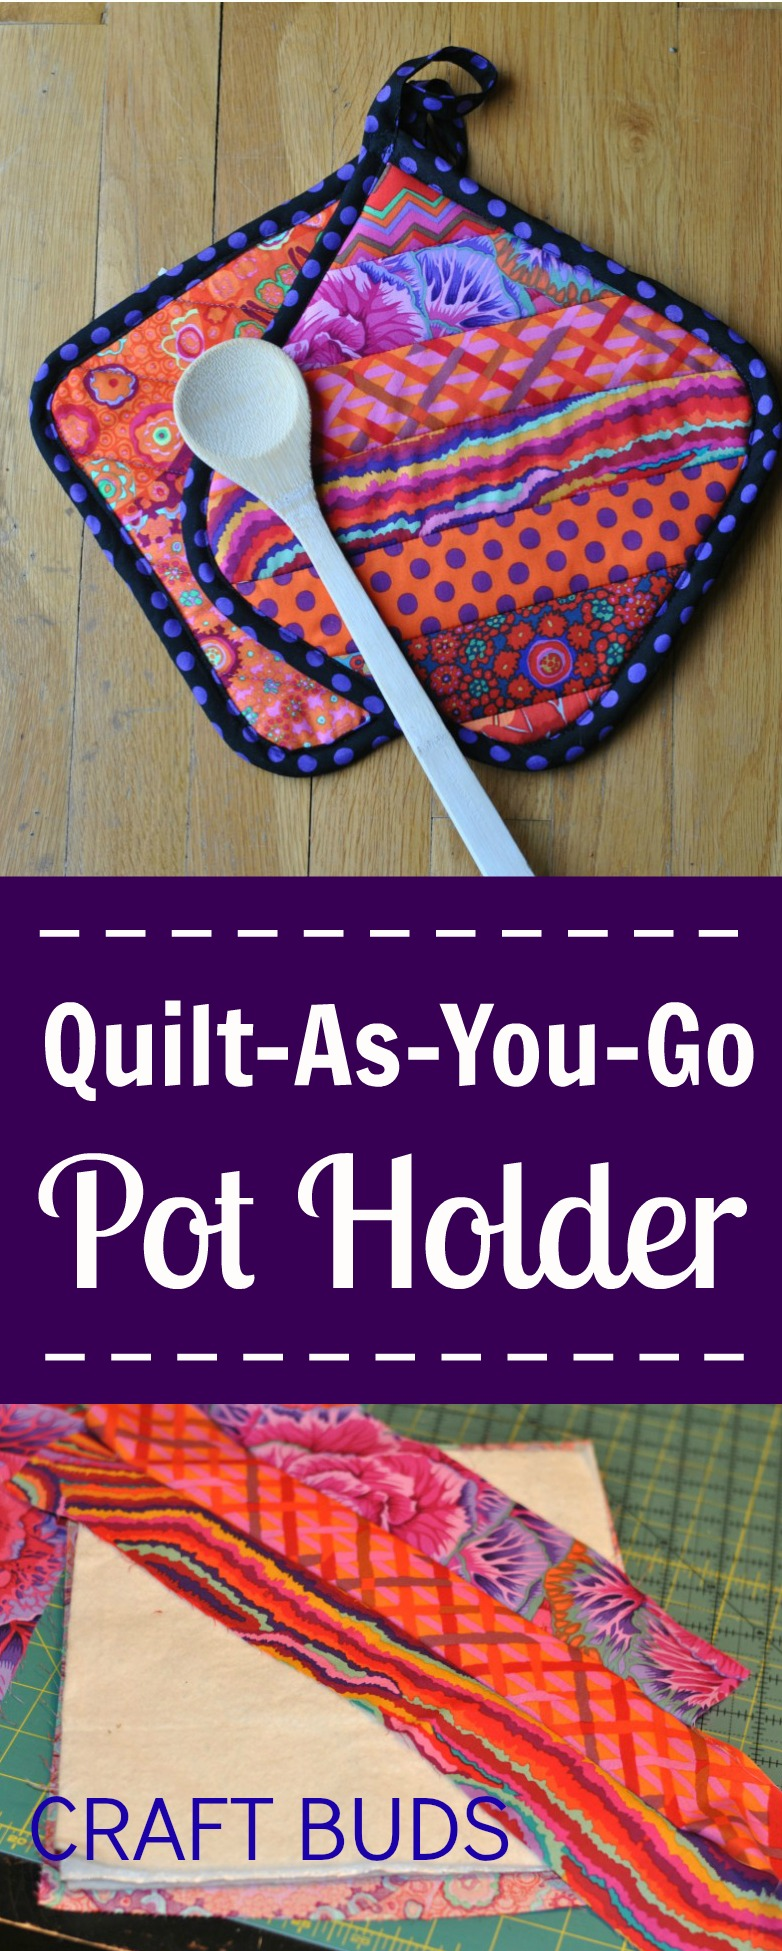 Quilt-As-You-Go Pot Holder - Craft Buds